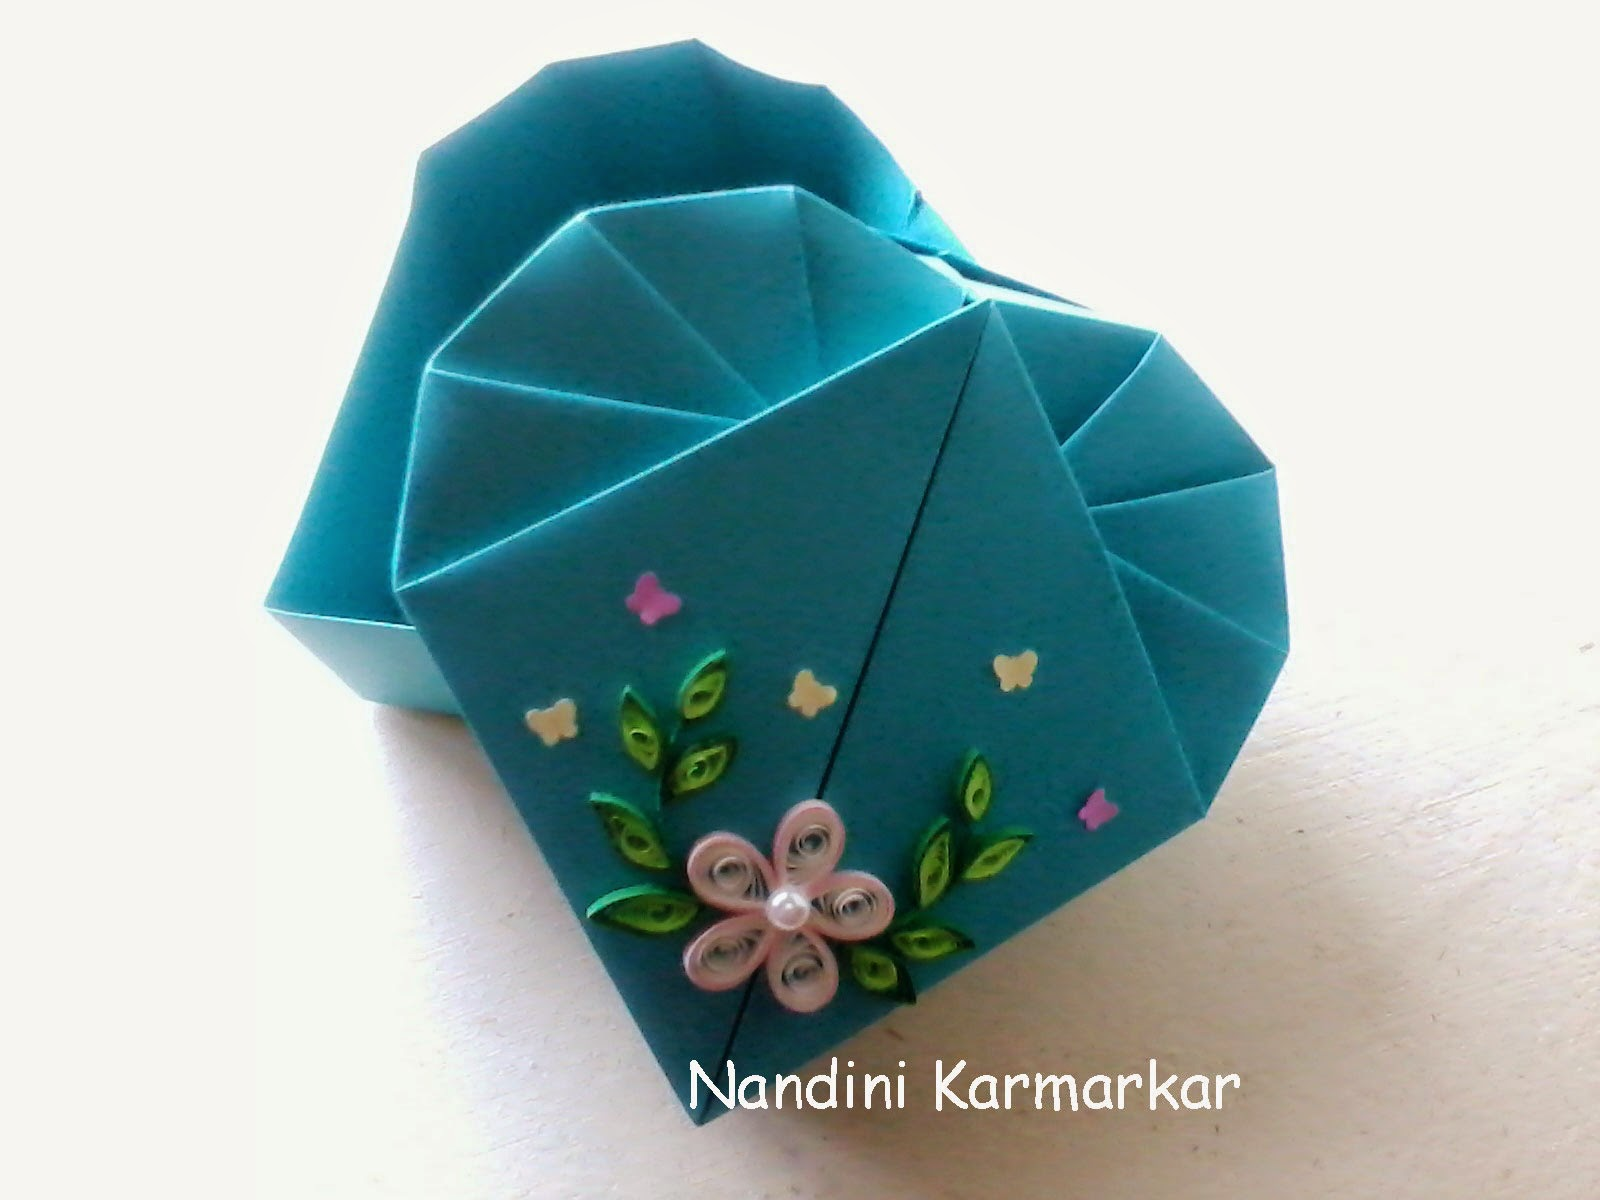 Paint paper scissors origami heart box snehals creations this a heart box made with origami i have used simple chart paper in a pretty shade of turquoise there is nothing except paper folding used jeuxipadfo Choice Image